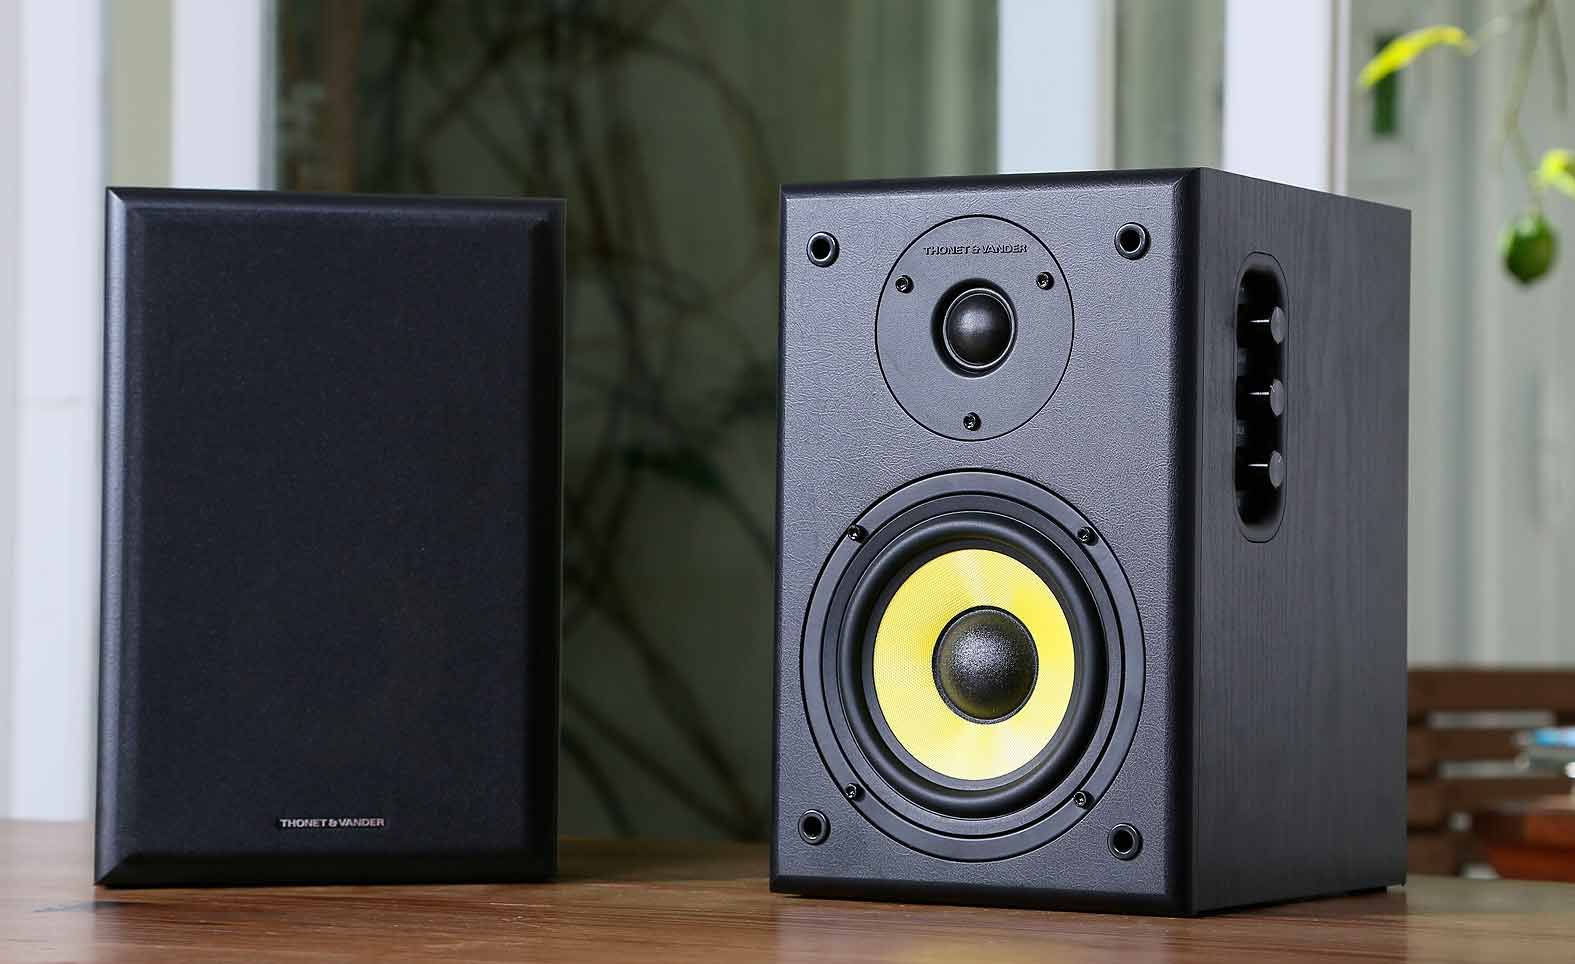 S 43 Thonet Das Boom: Thonet And Vander Kurbis Bt Speaker Review